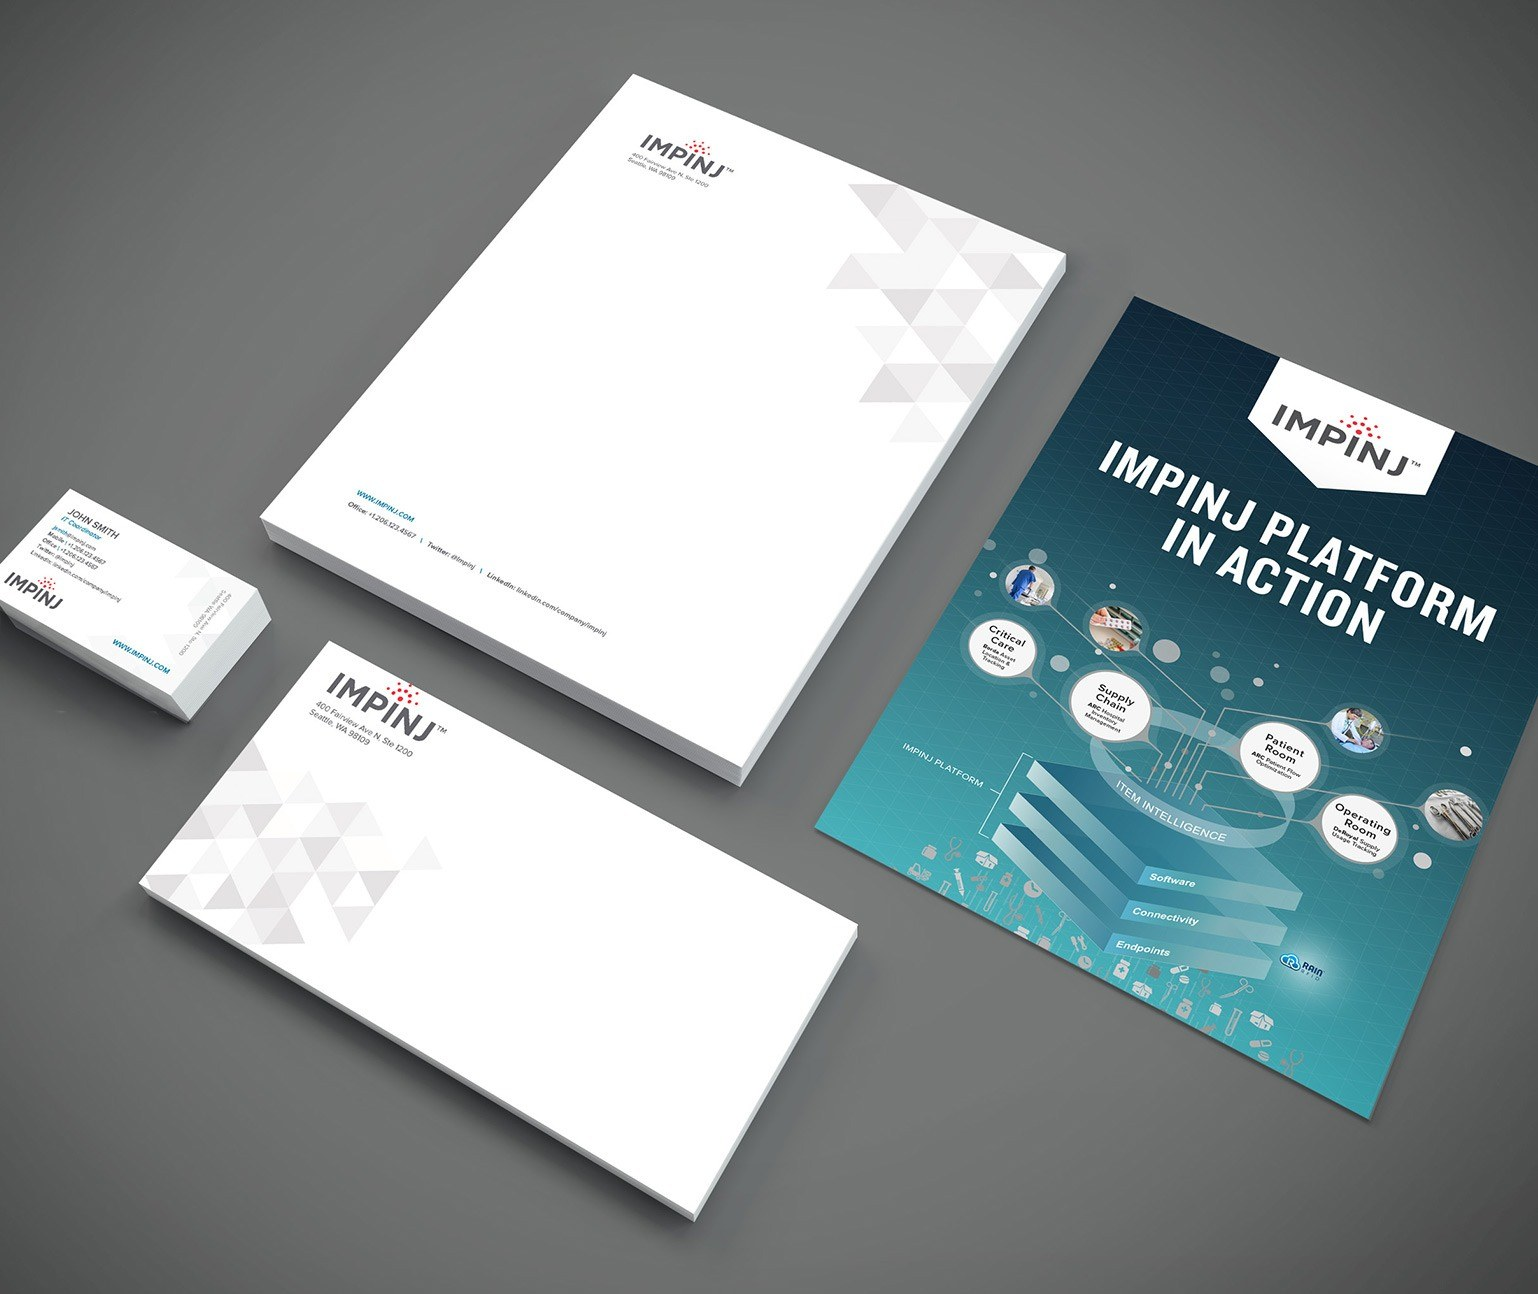 Impinj marketing collateral on a grey table